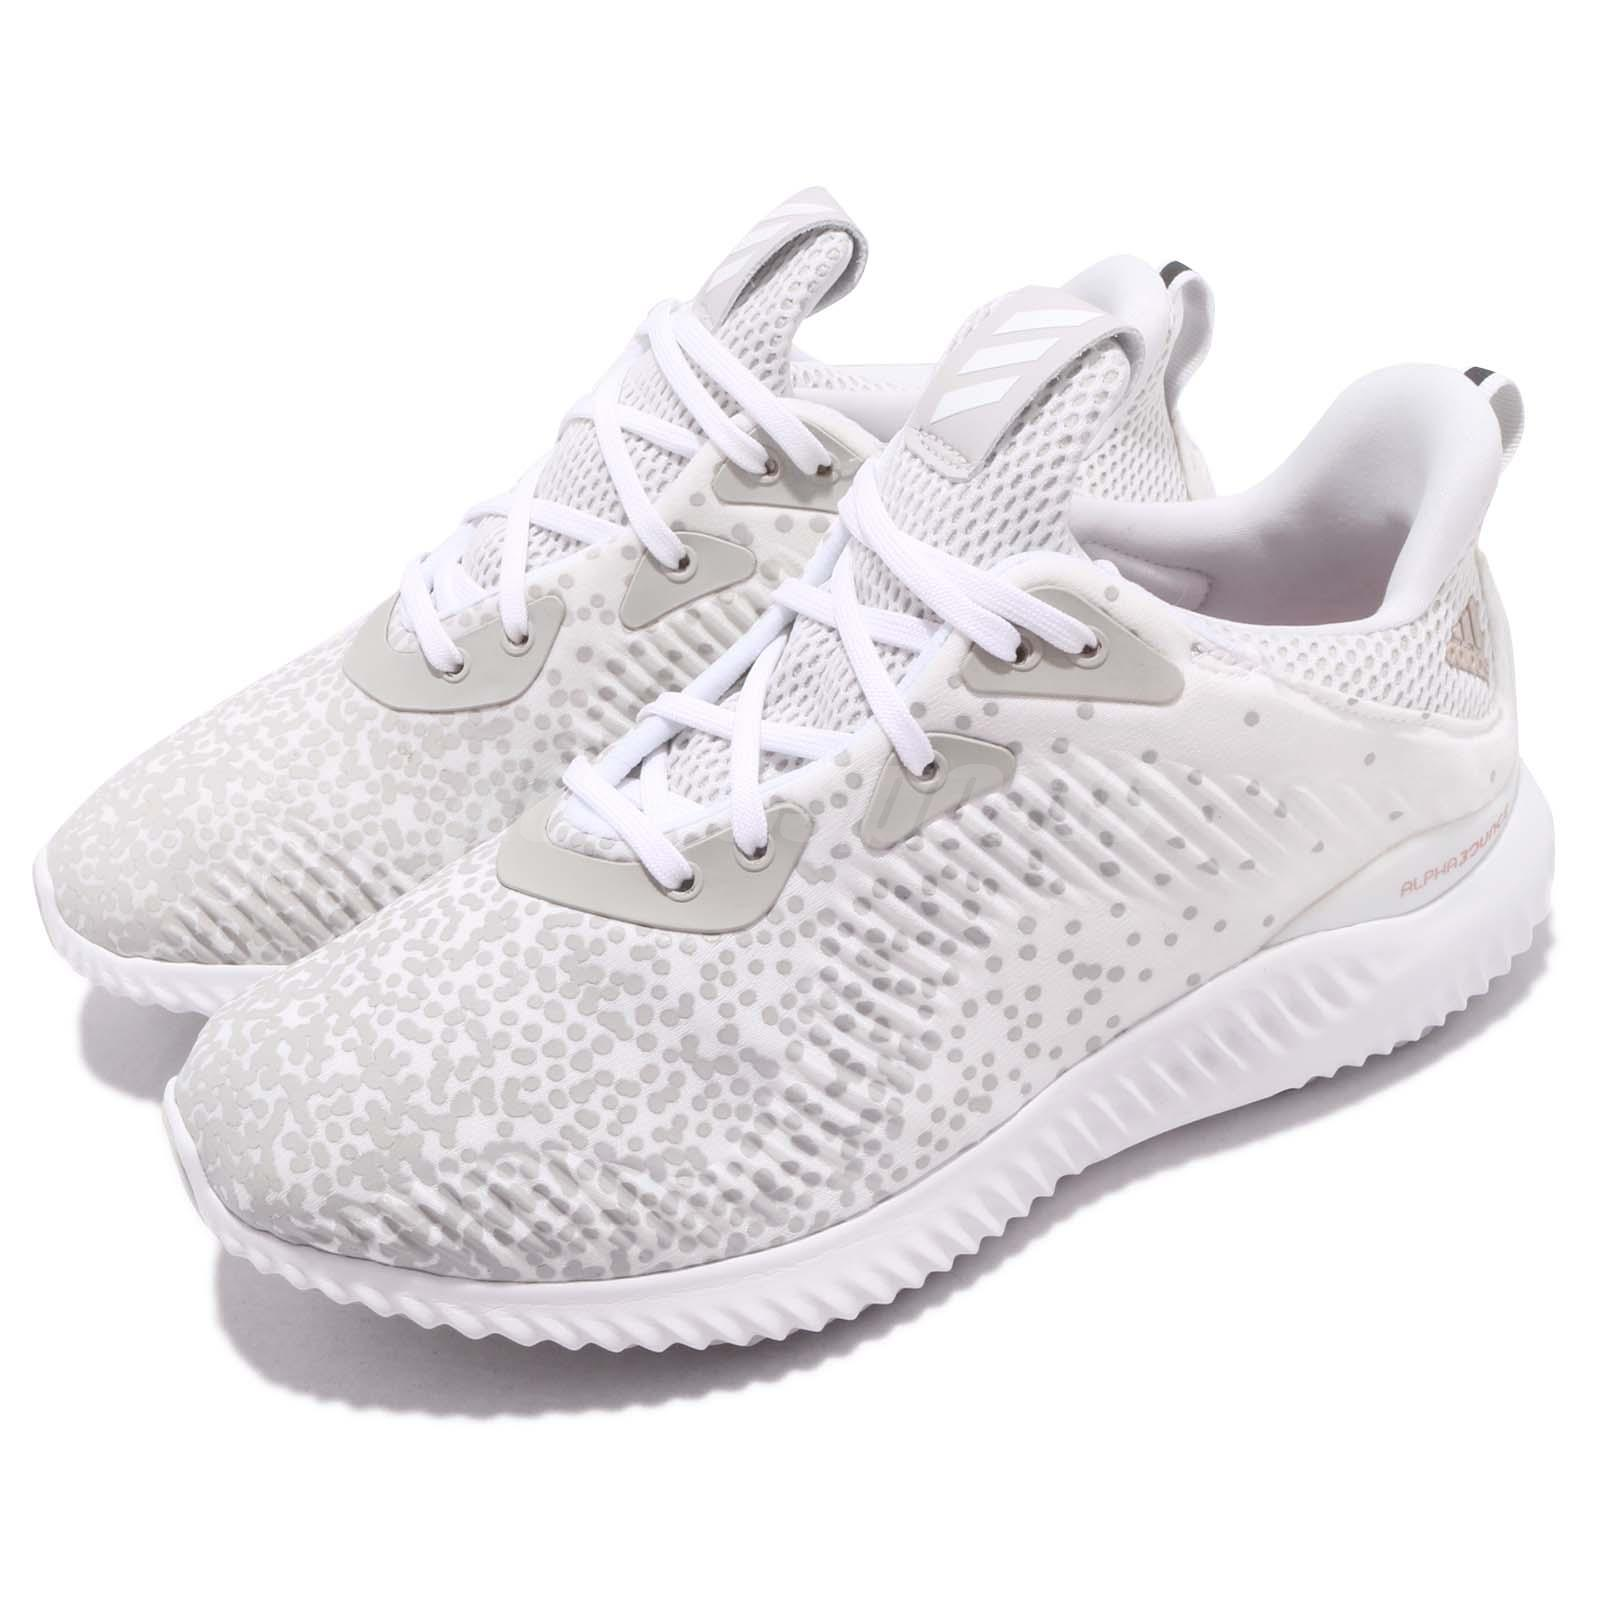 45ac1785b72f Details about adidas Alphabounce 1 W White Grey Black Women Running Shoes  Sneakers DA9971